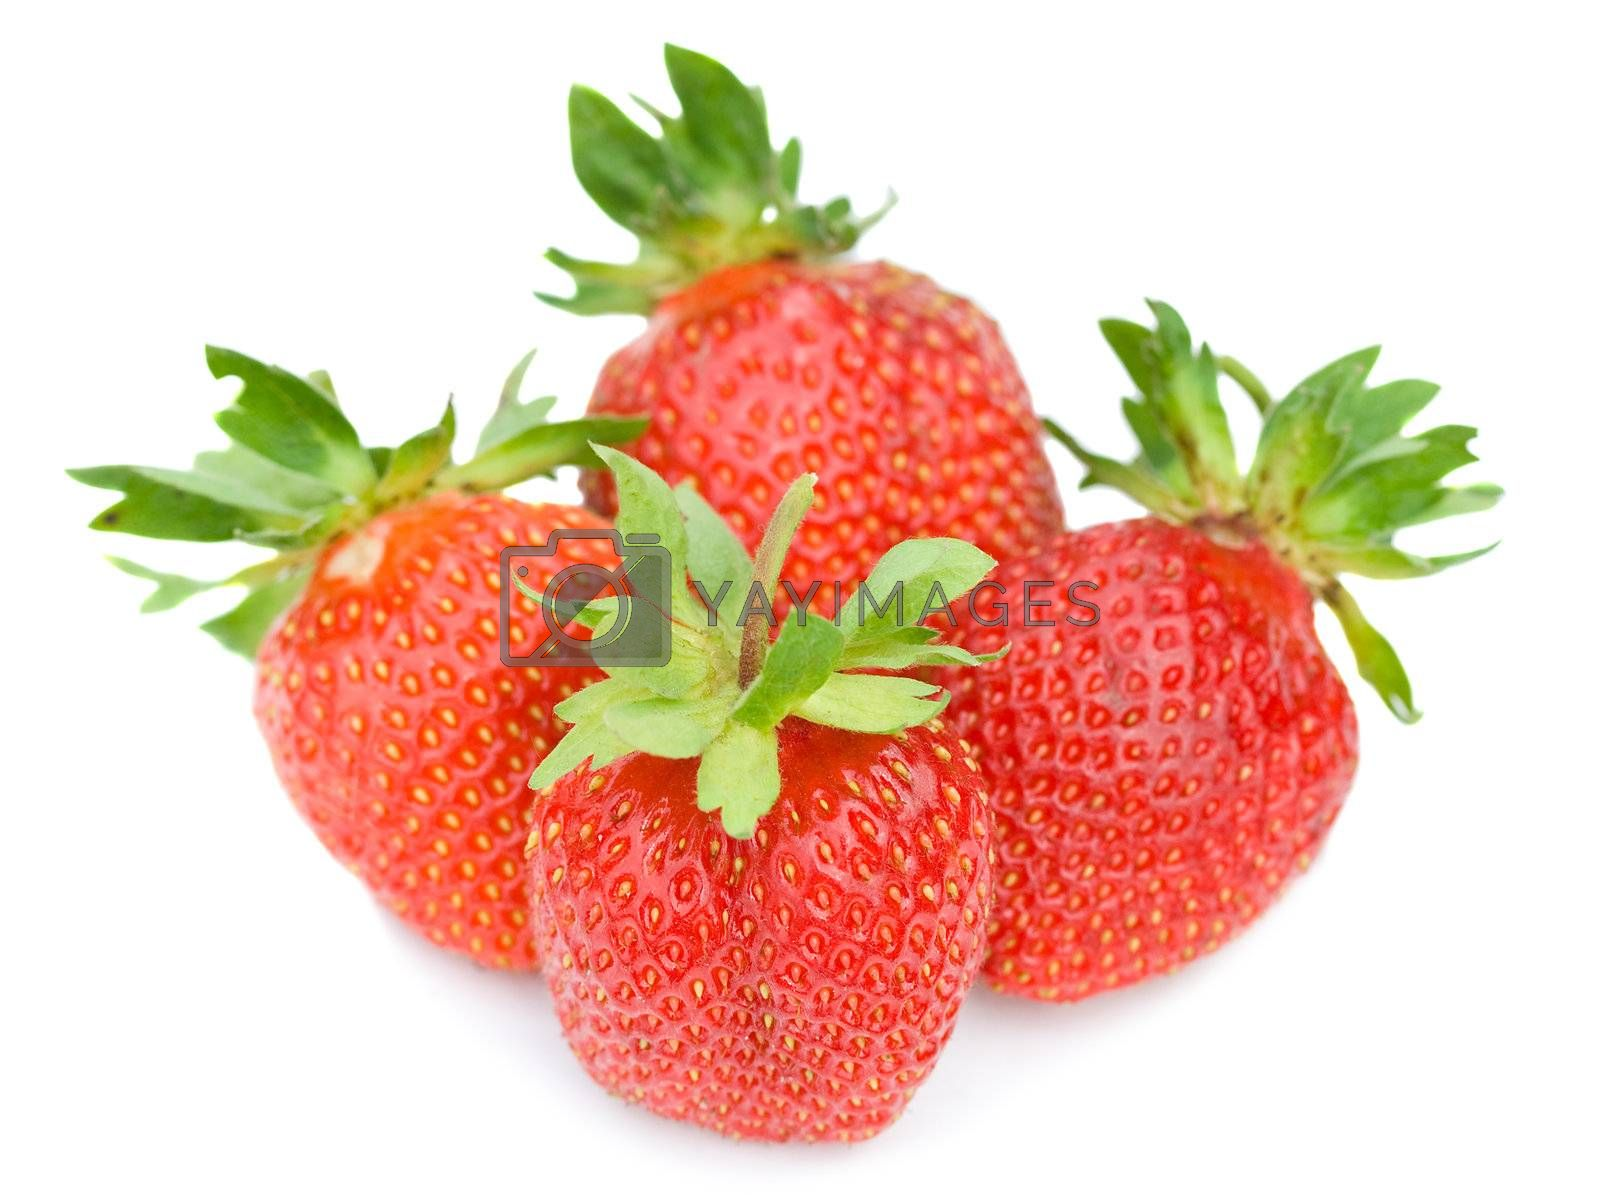 four ripe strawberries, selective focus, isolated on white